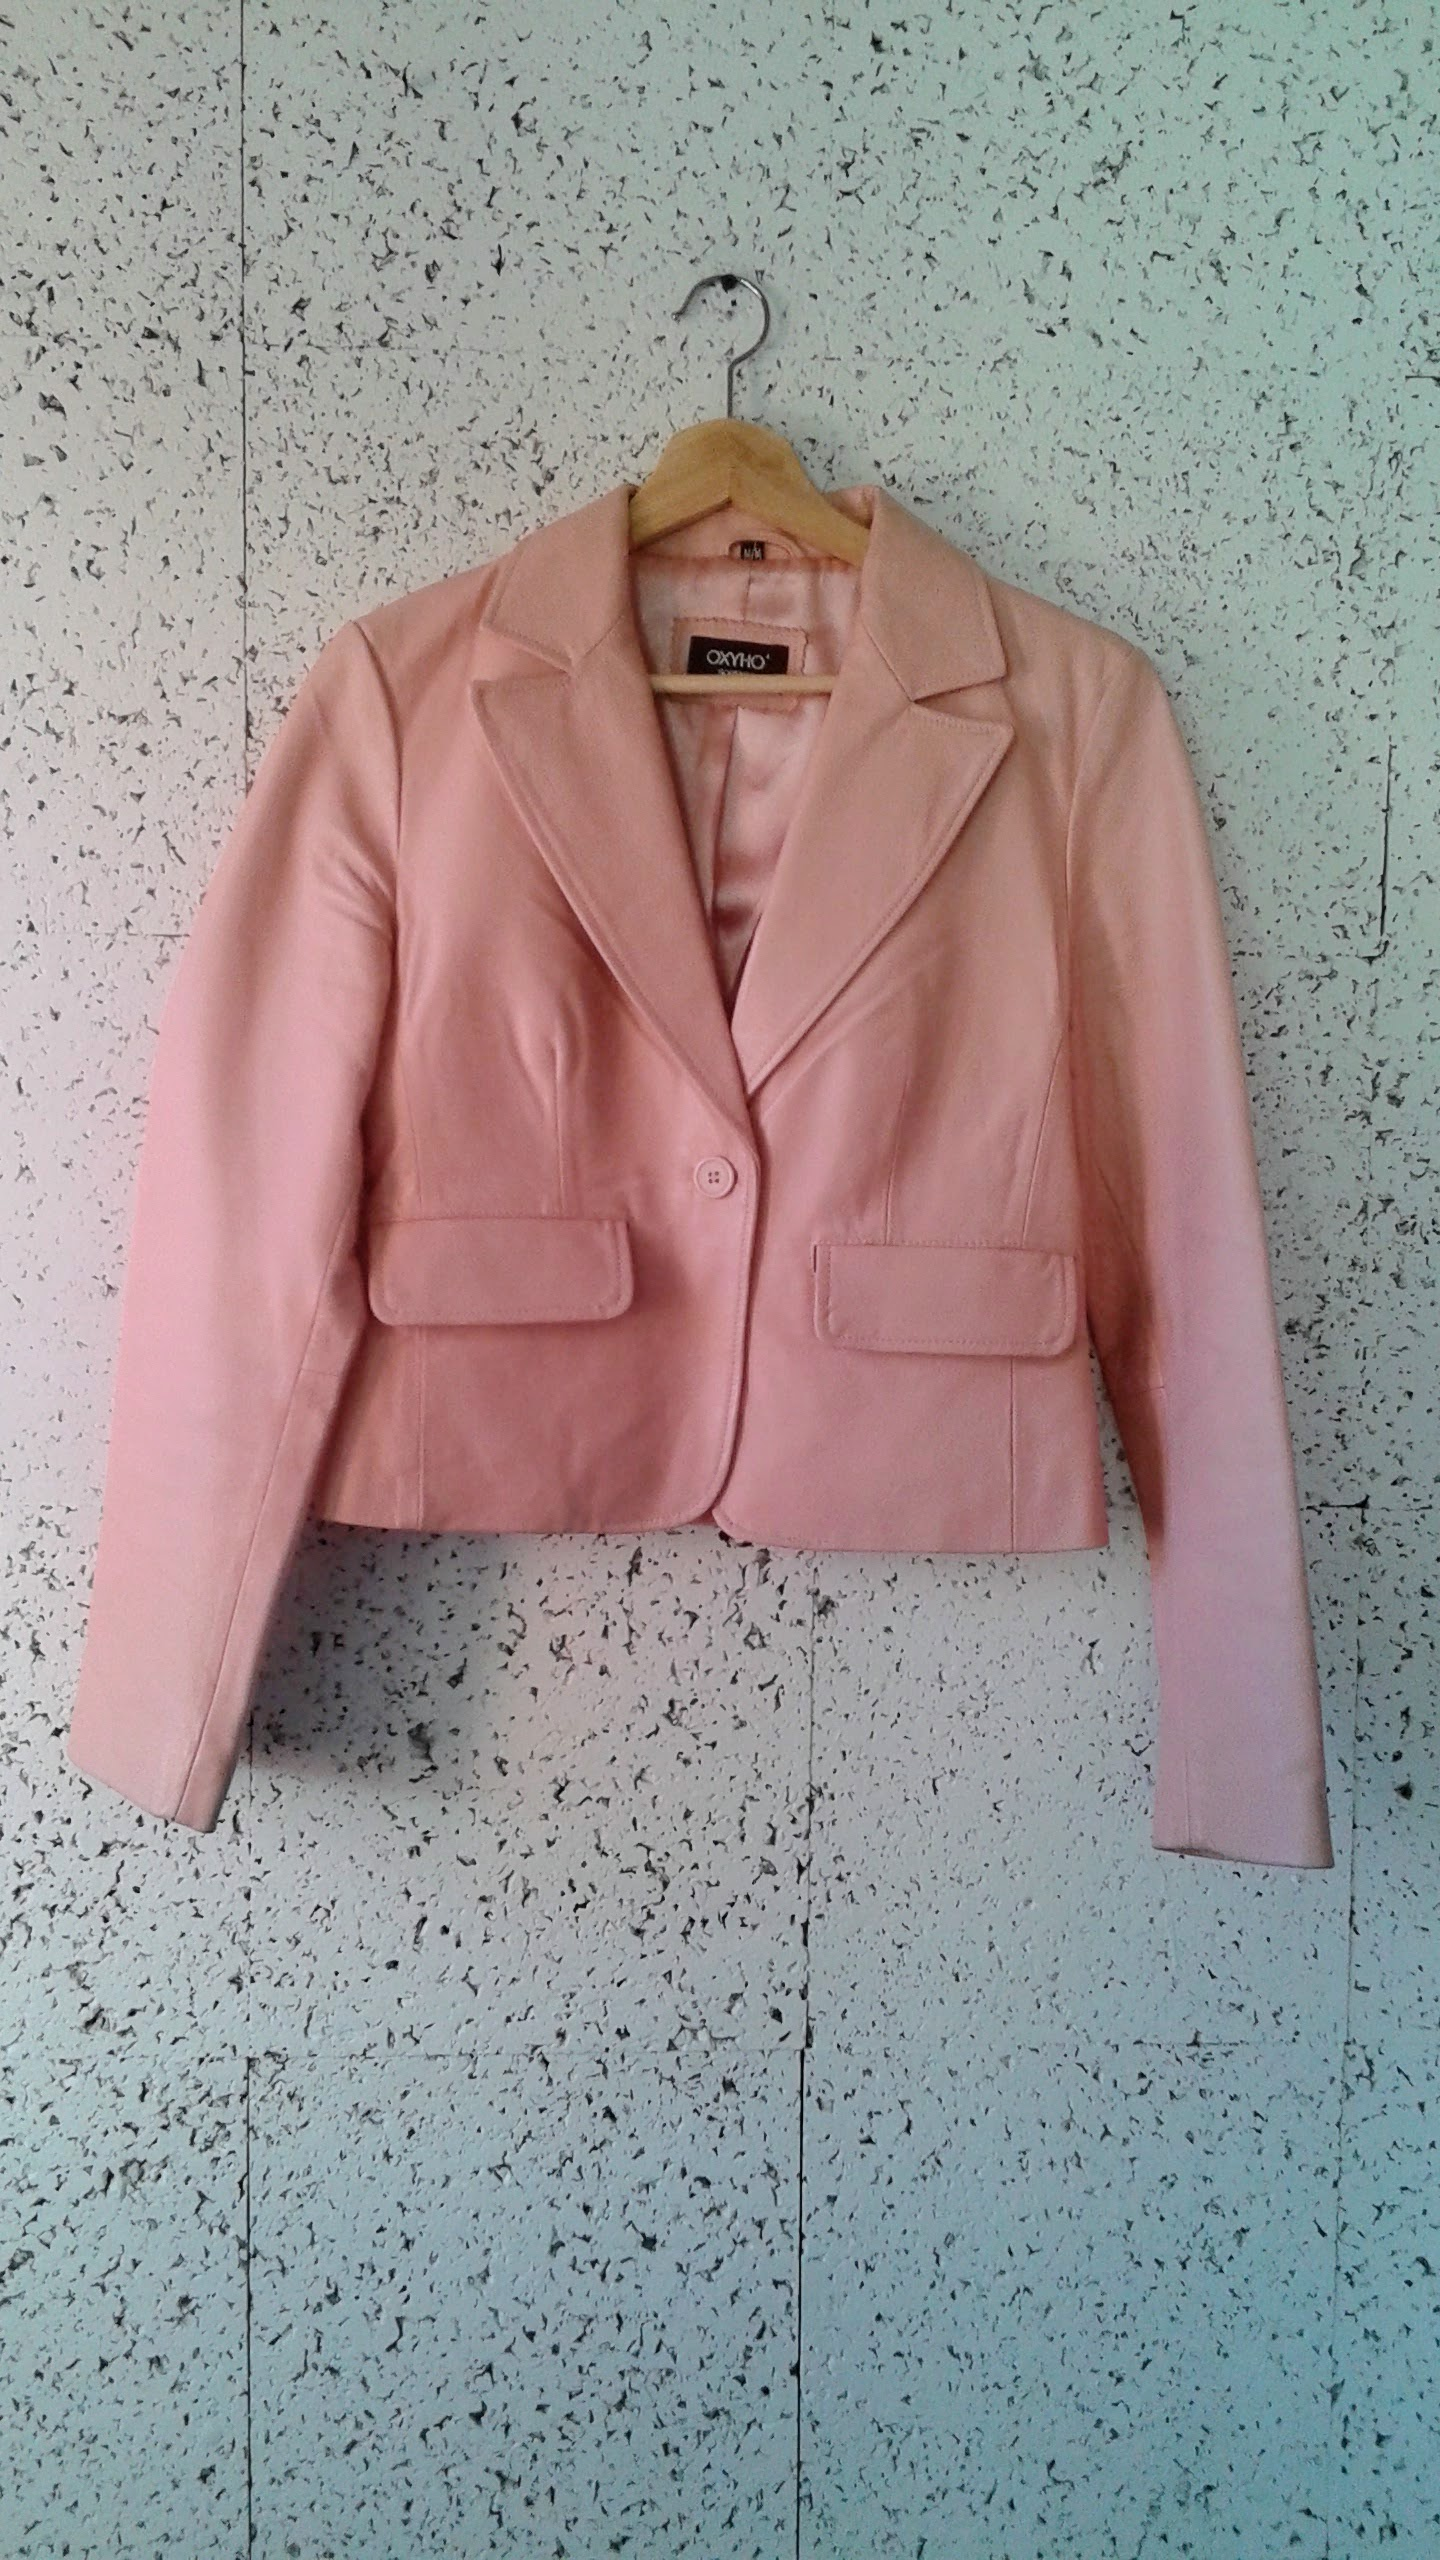 Leather blazer; Size S, $52